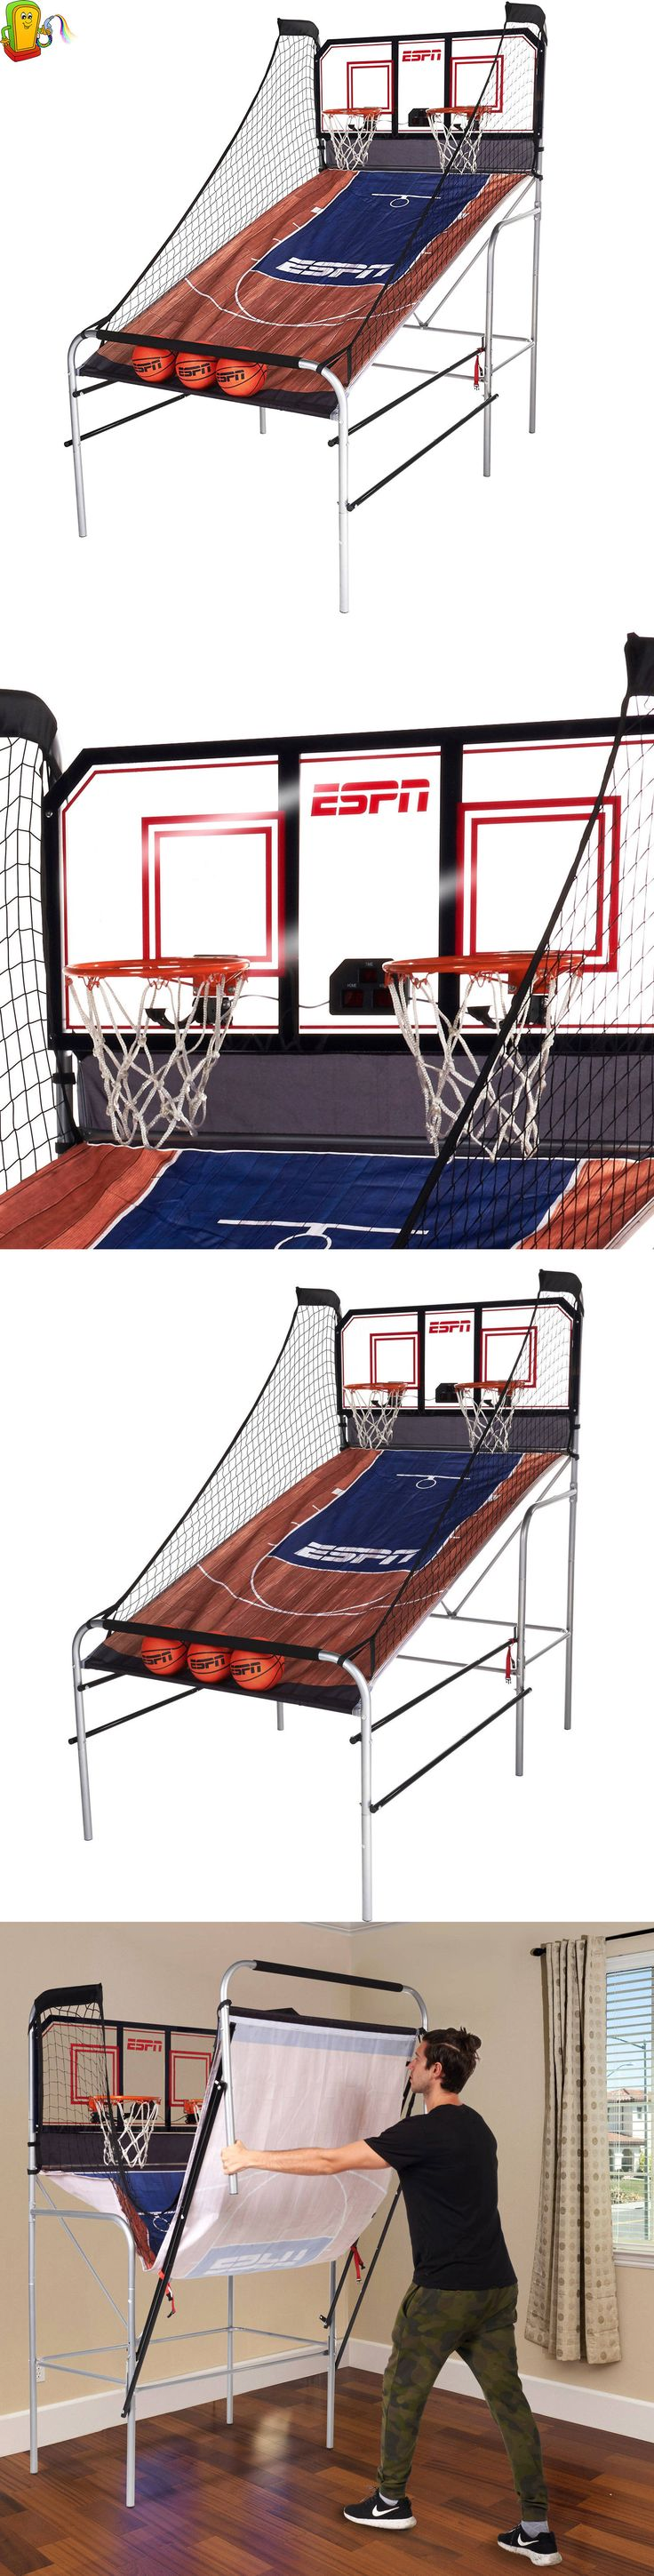 Other Indoor Games 36278: Espn Basketball Game Indoor Electronic Arcade Sports Kids 2 Player Heavy Duty -> BUY IT NOW ONLY: $213.31 on eBay!